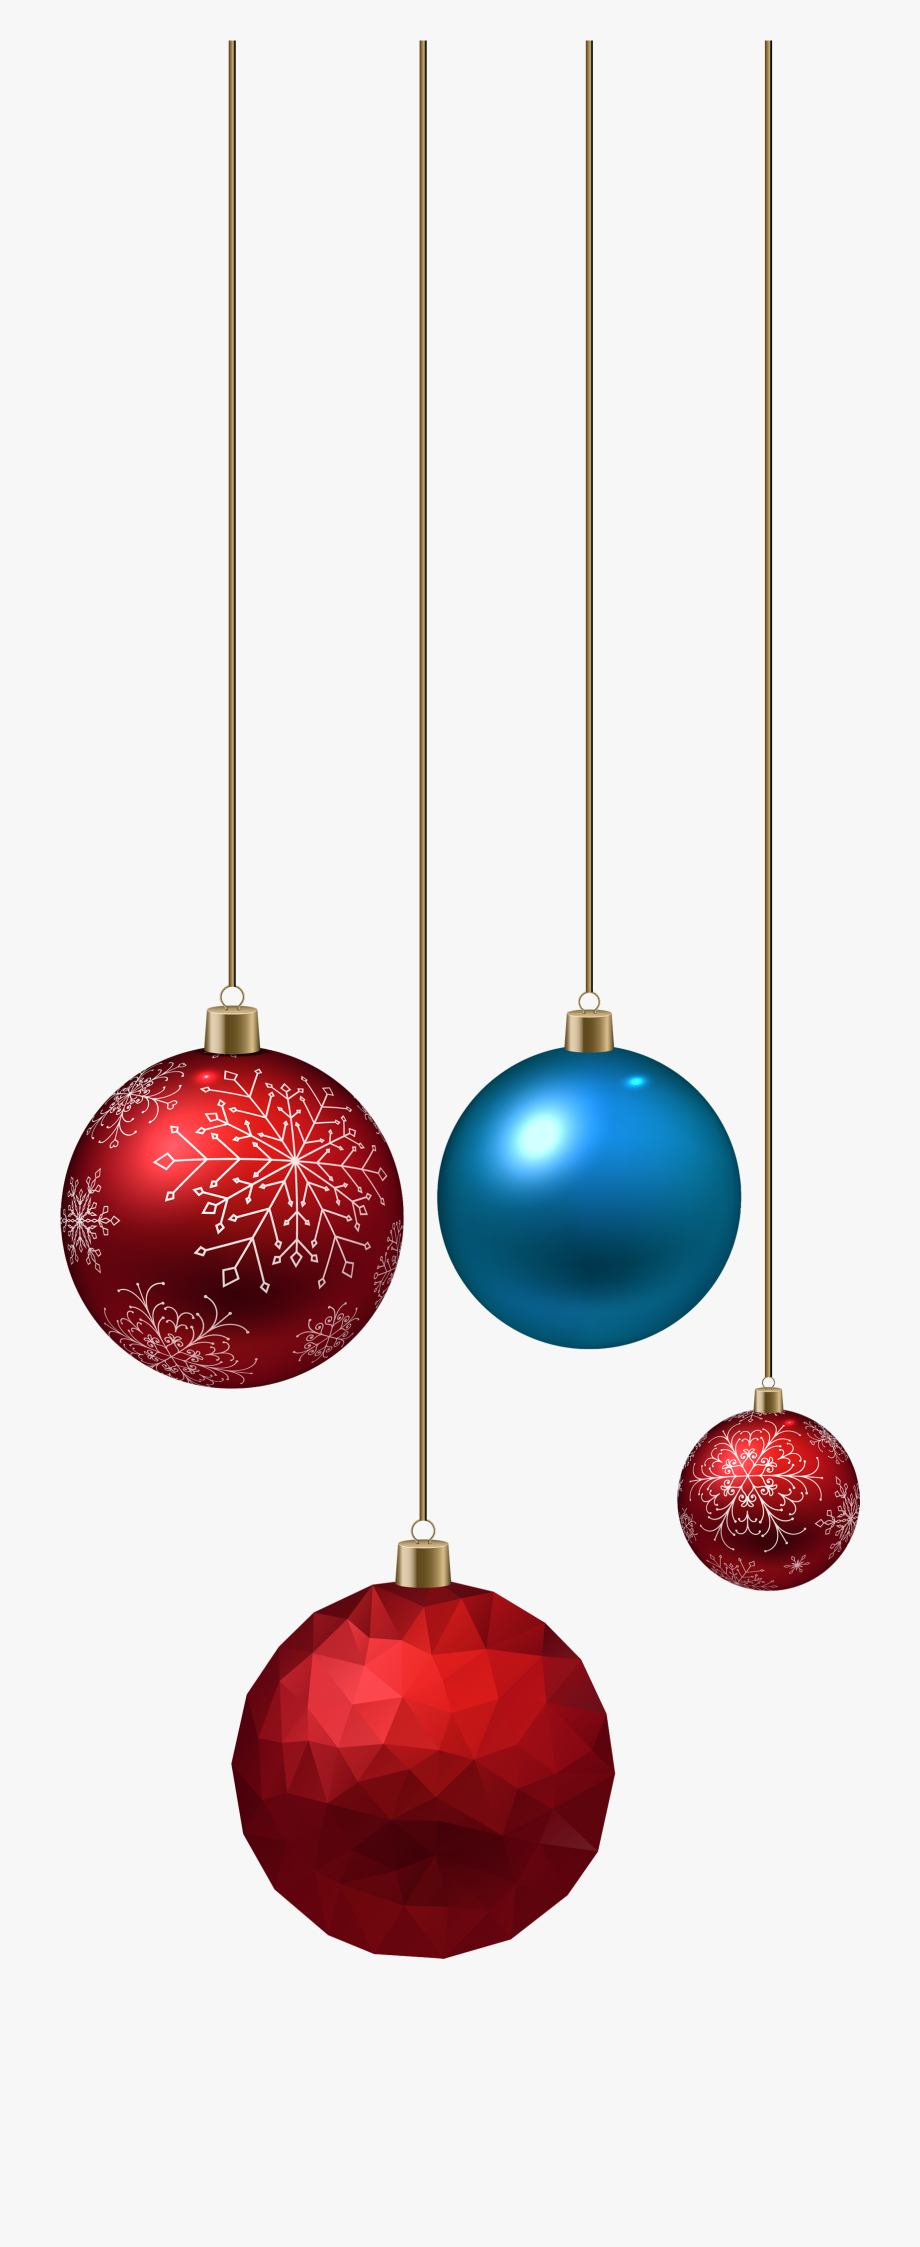 Boarder Red Christmas Ornaments Png.